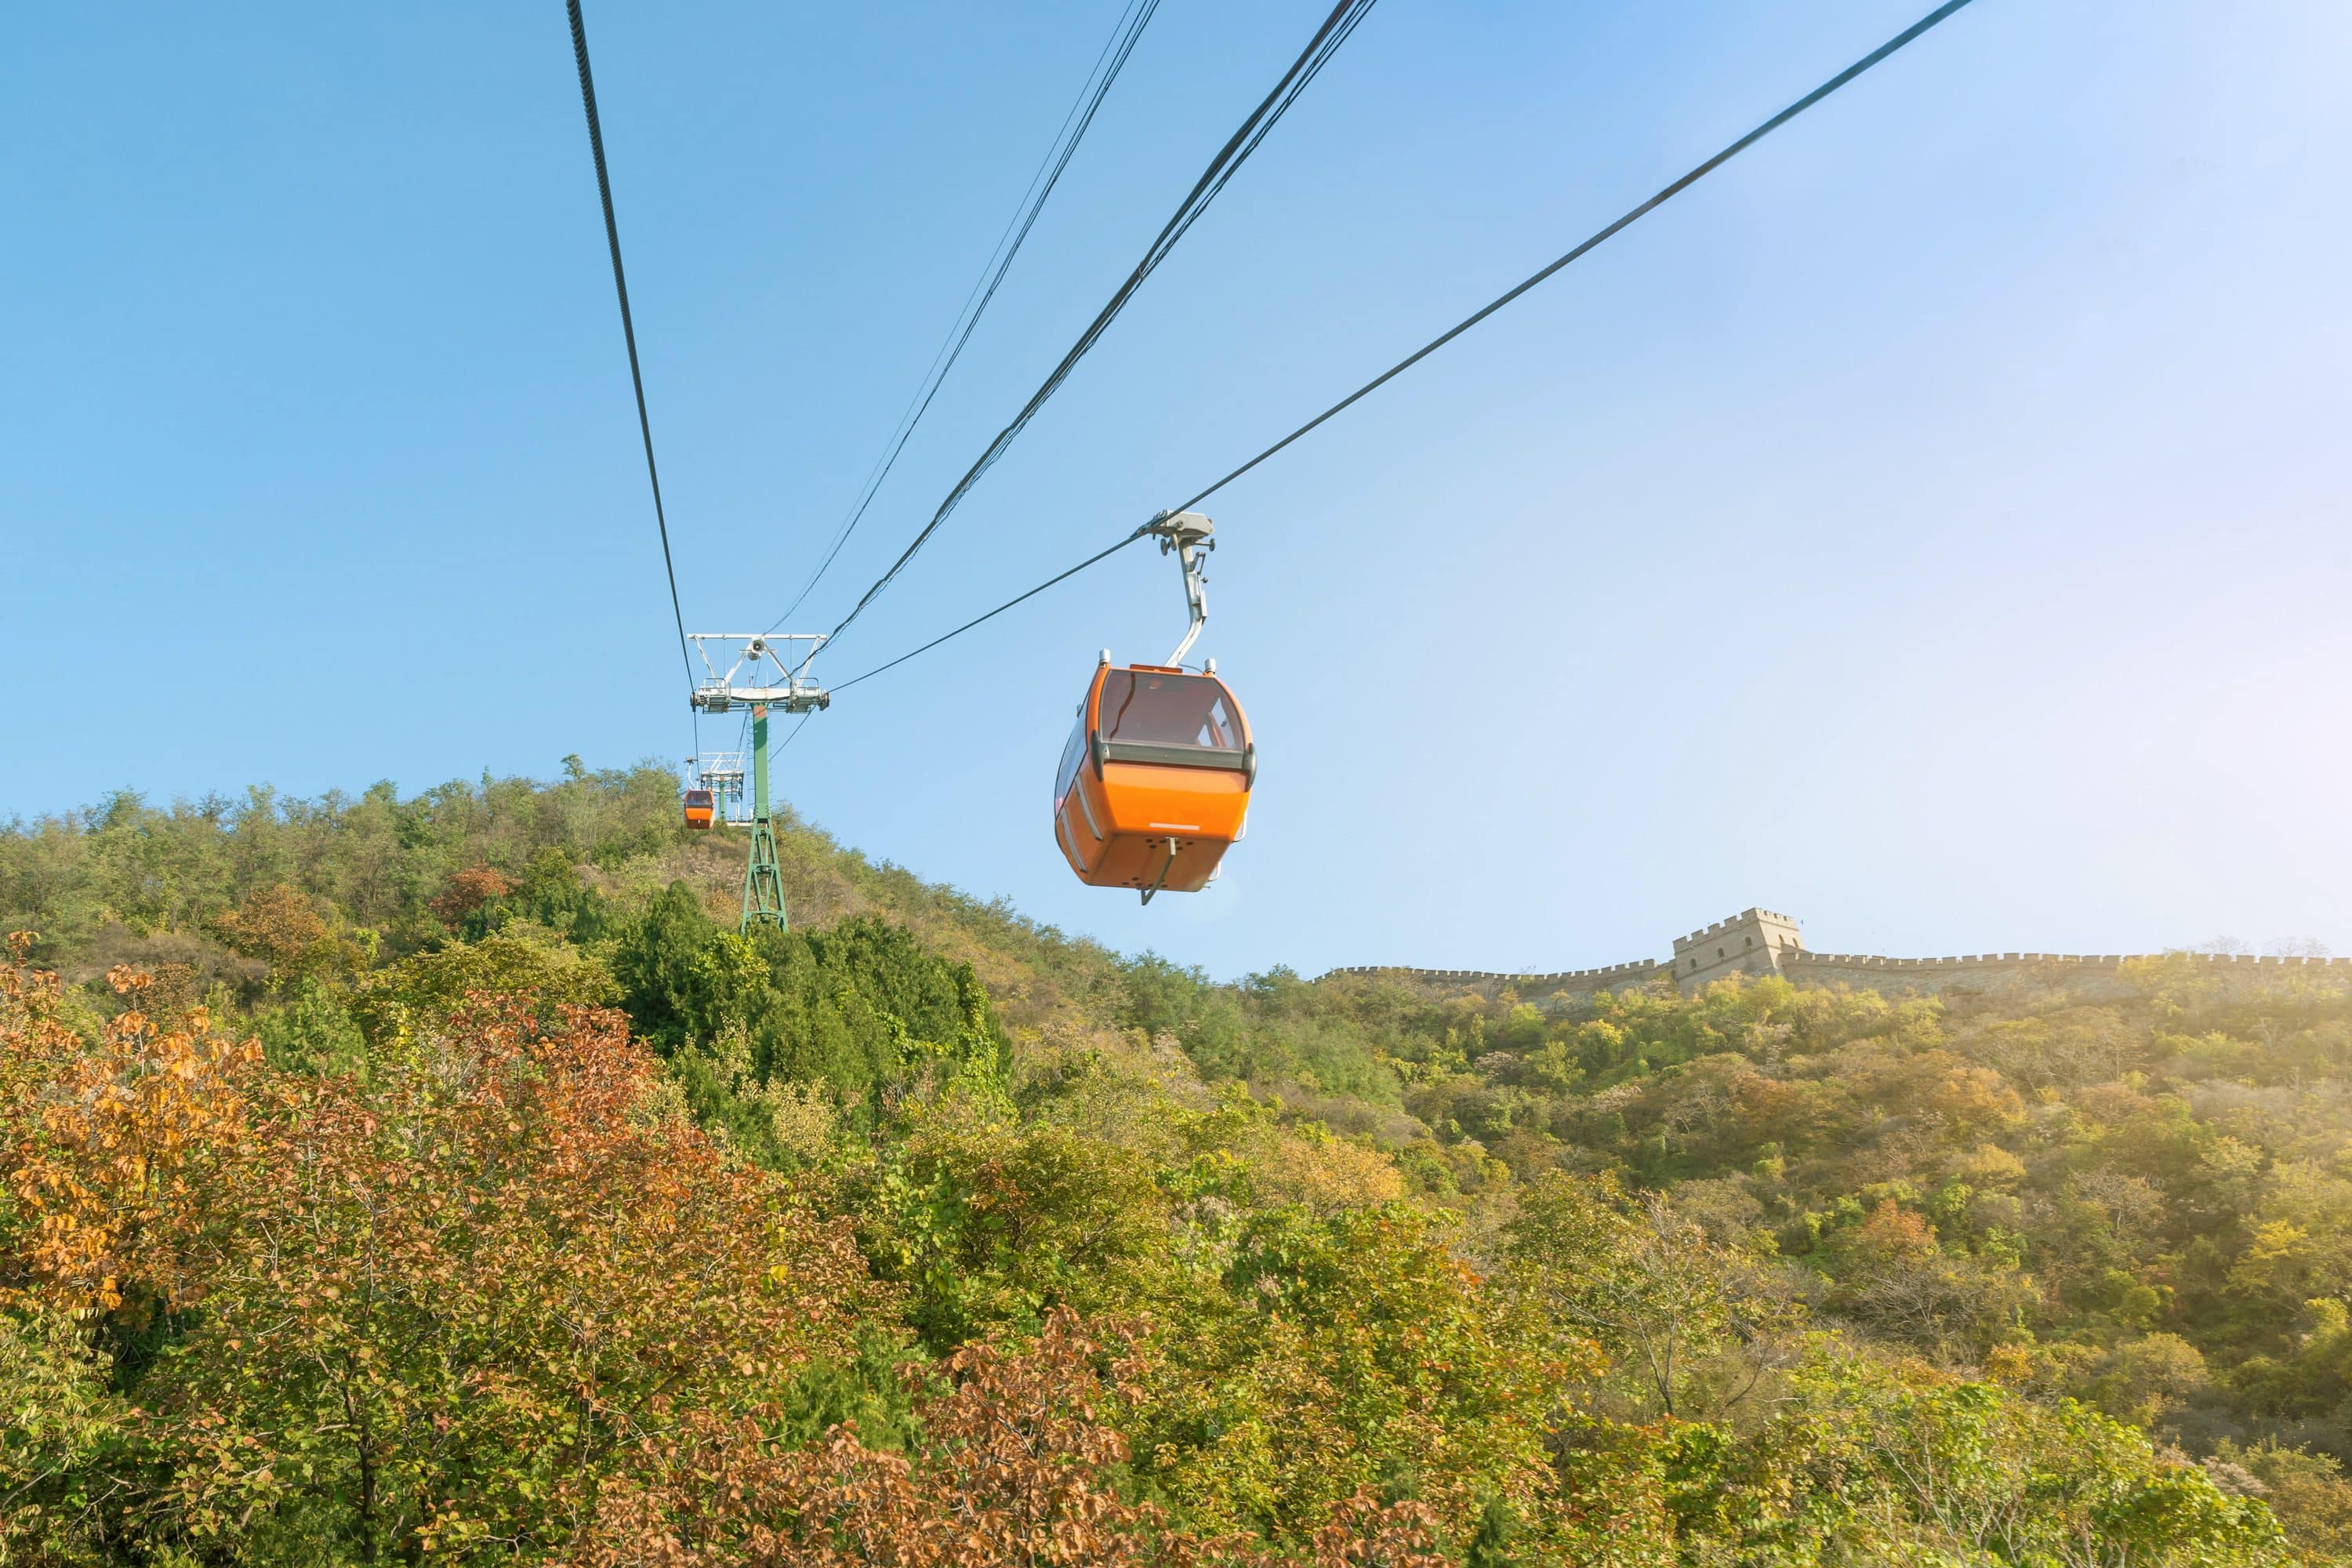 A cable car transports visitors at Mutianyu, Beijing